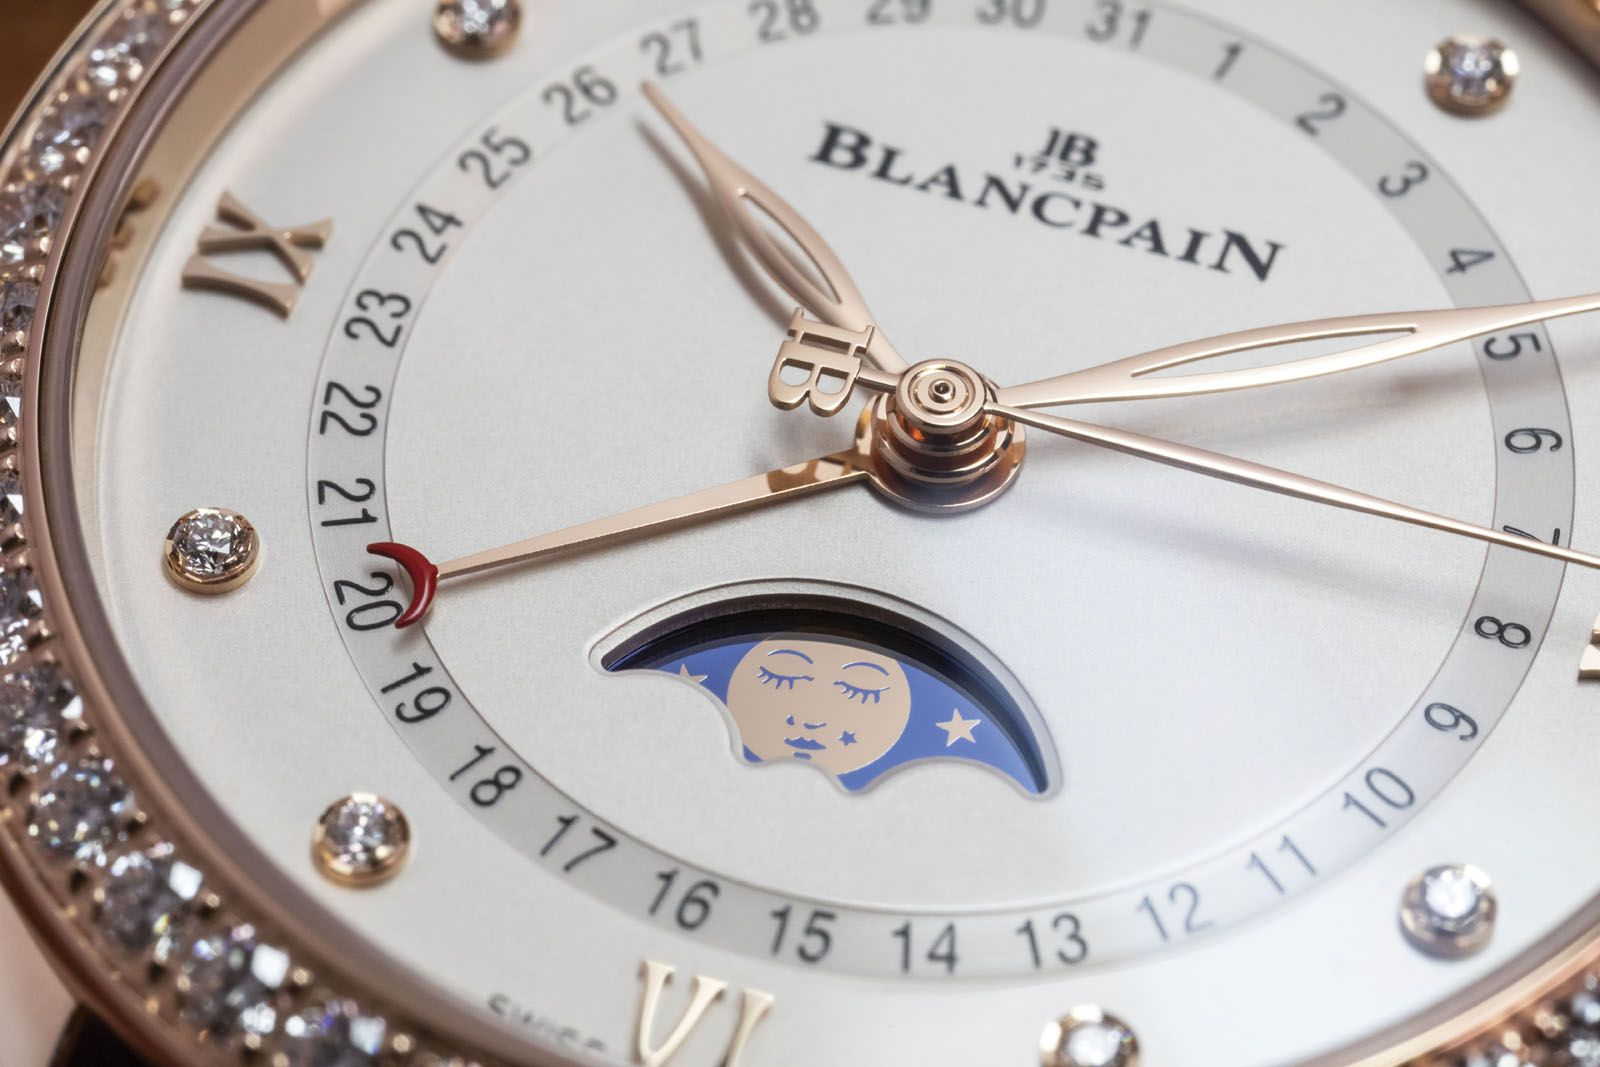 The moon featured in Blancpain's women's moonphase watches sports a beauty mark, just like the one screen legend Marilyn Monroe had on her left cheek